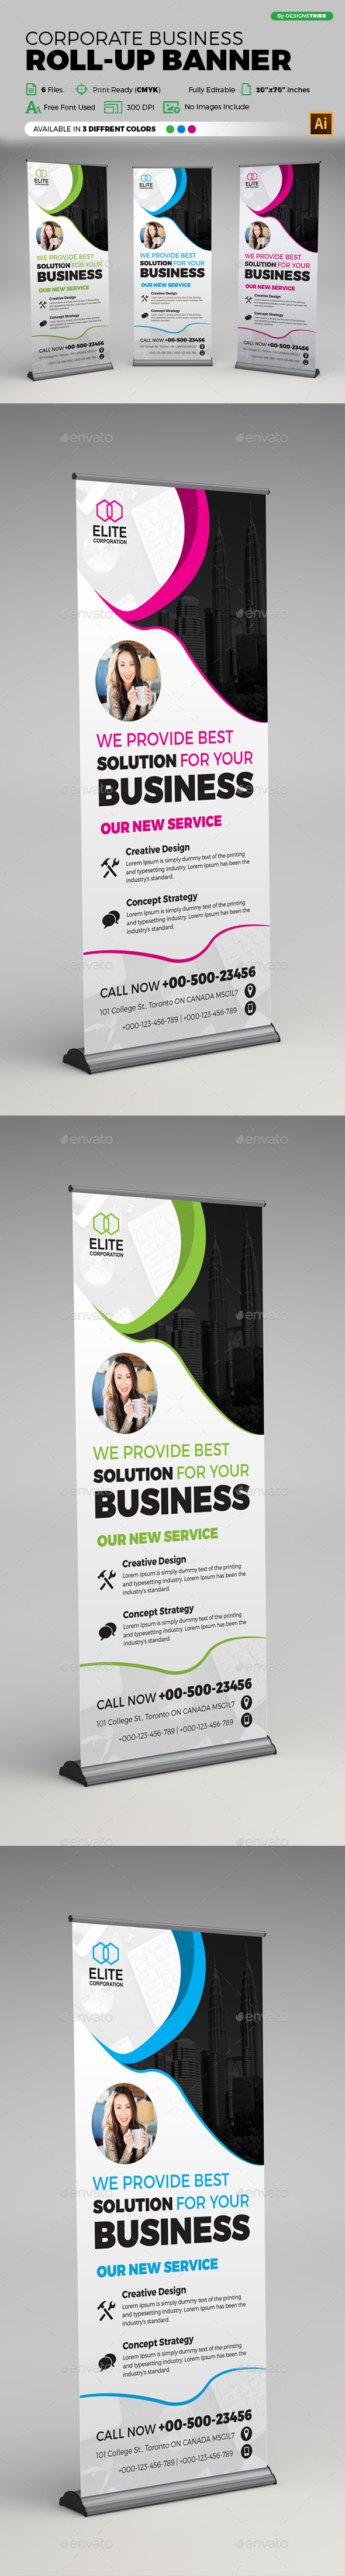 Corporate Business X Banner - Signage Print Templates